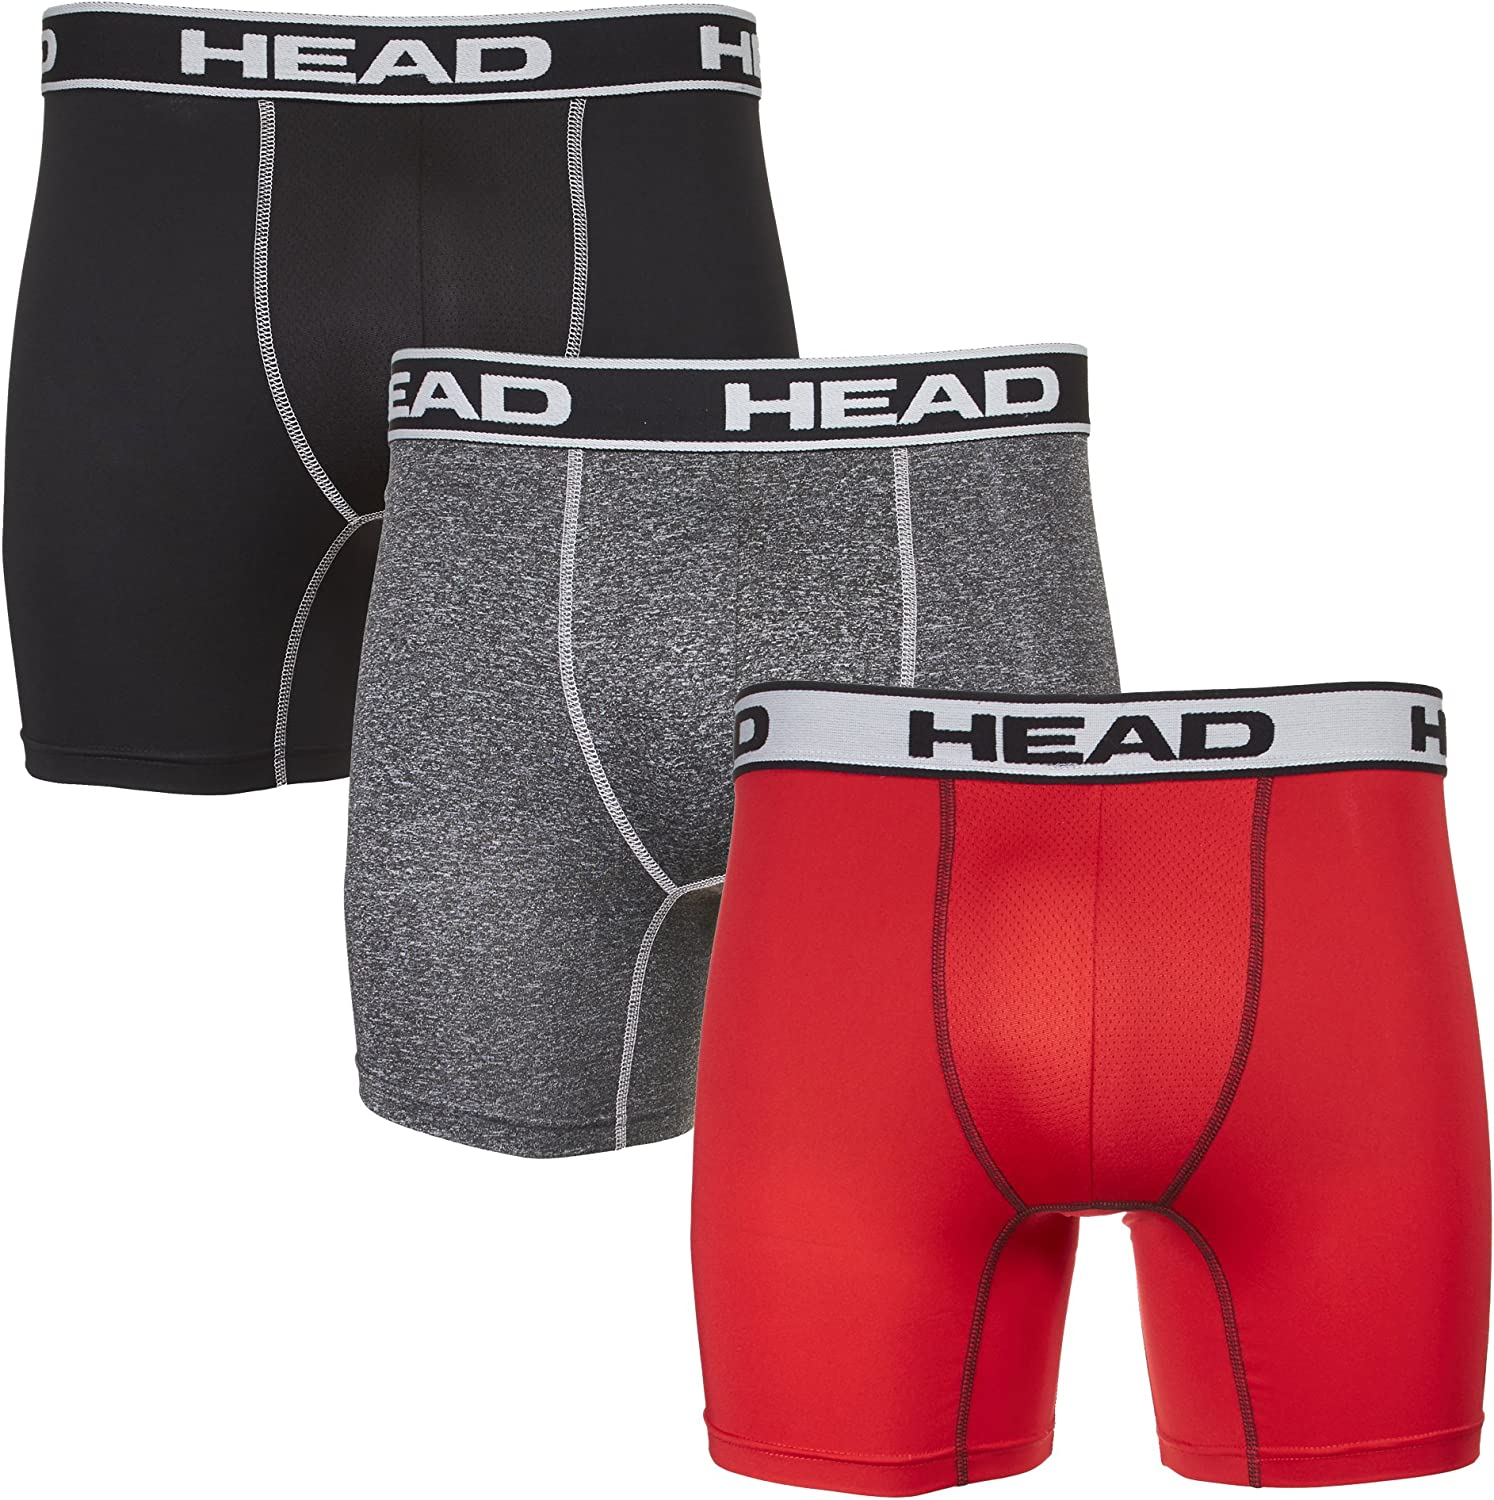 HEAD Mens Performance Underwear - 3-Pack Stretch Performance Boxer Briefs Breathable No Fly Up to Size 5X